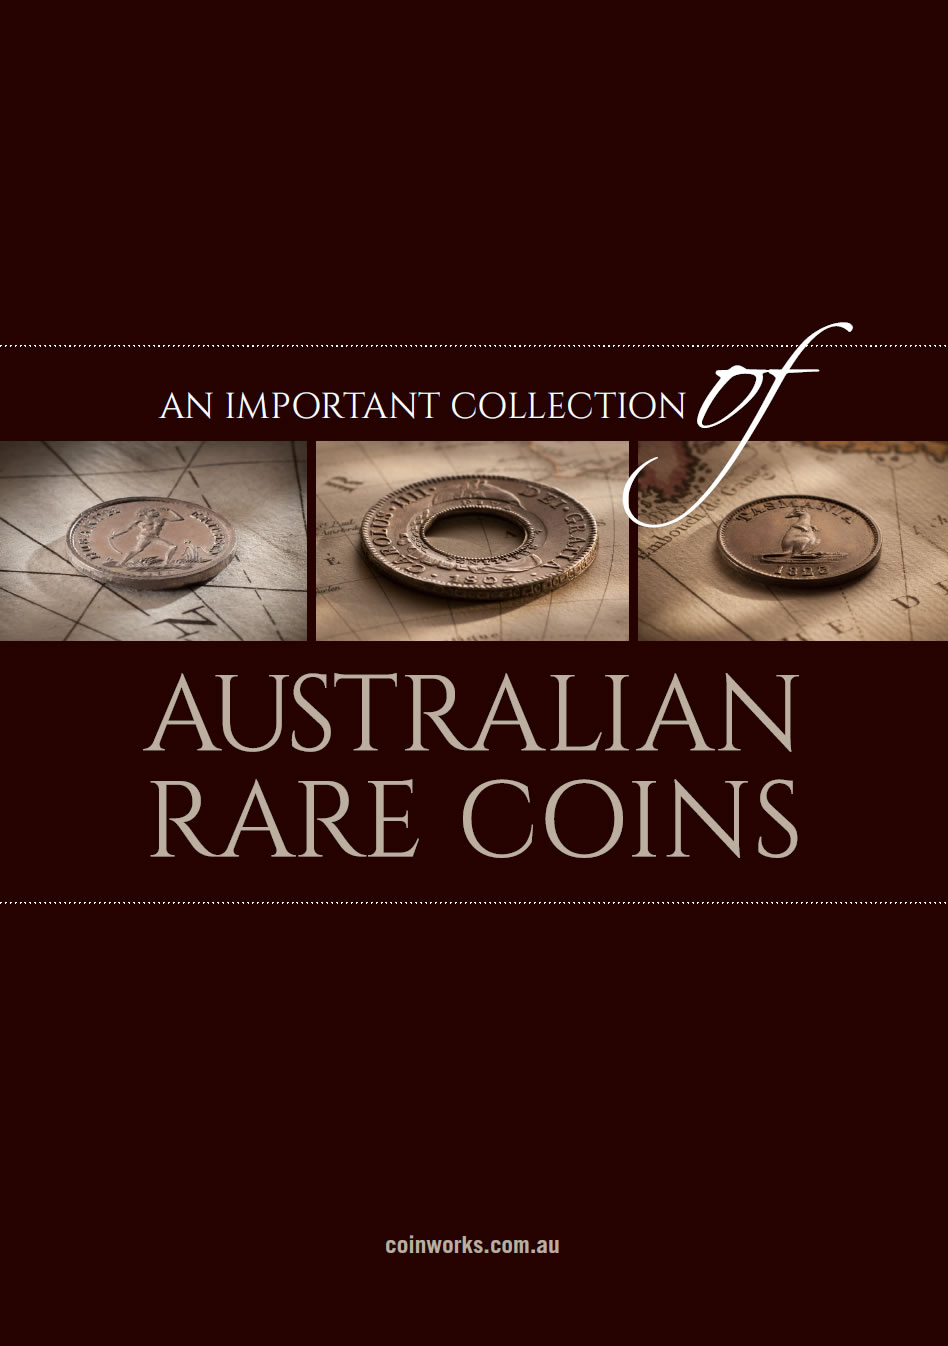 Australian Rare Coins - An important collection